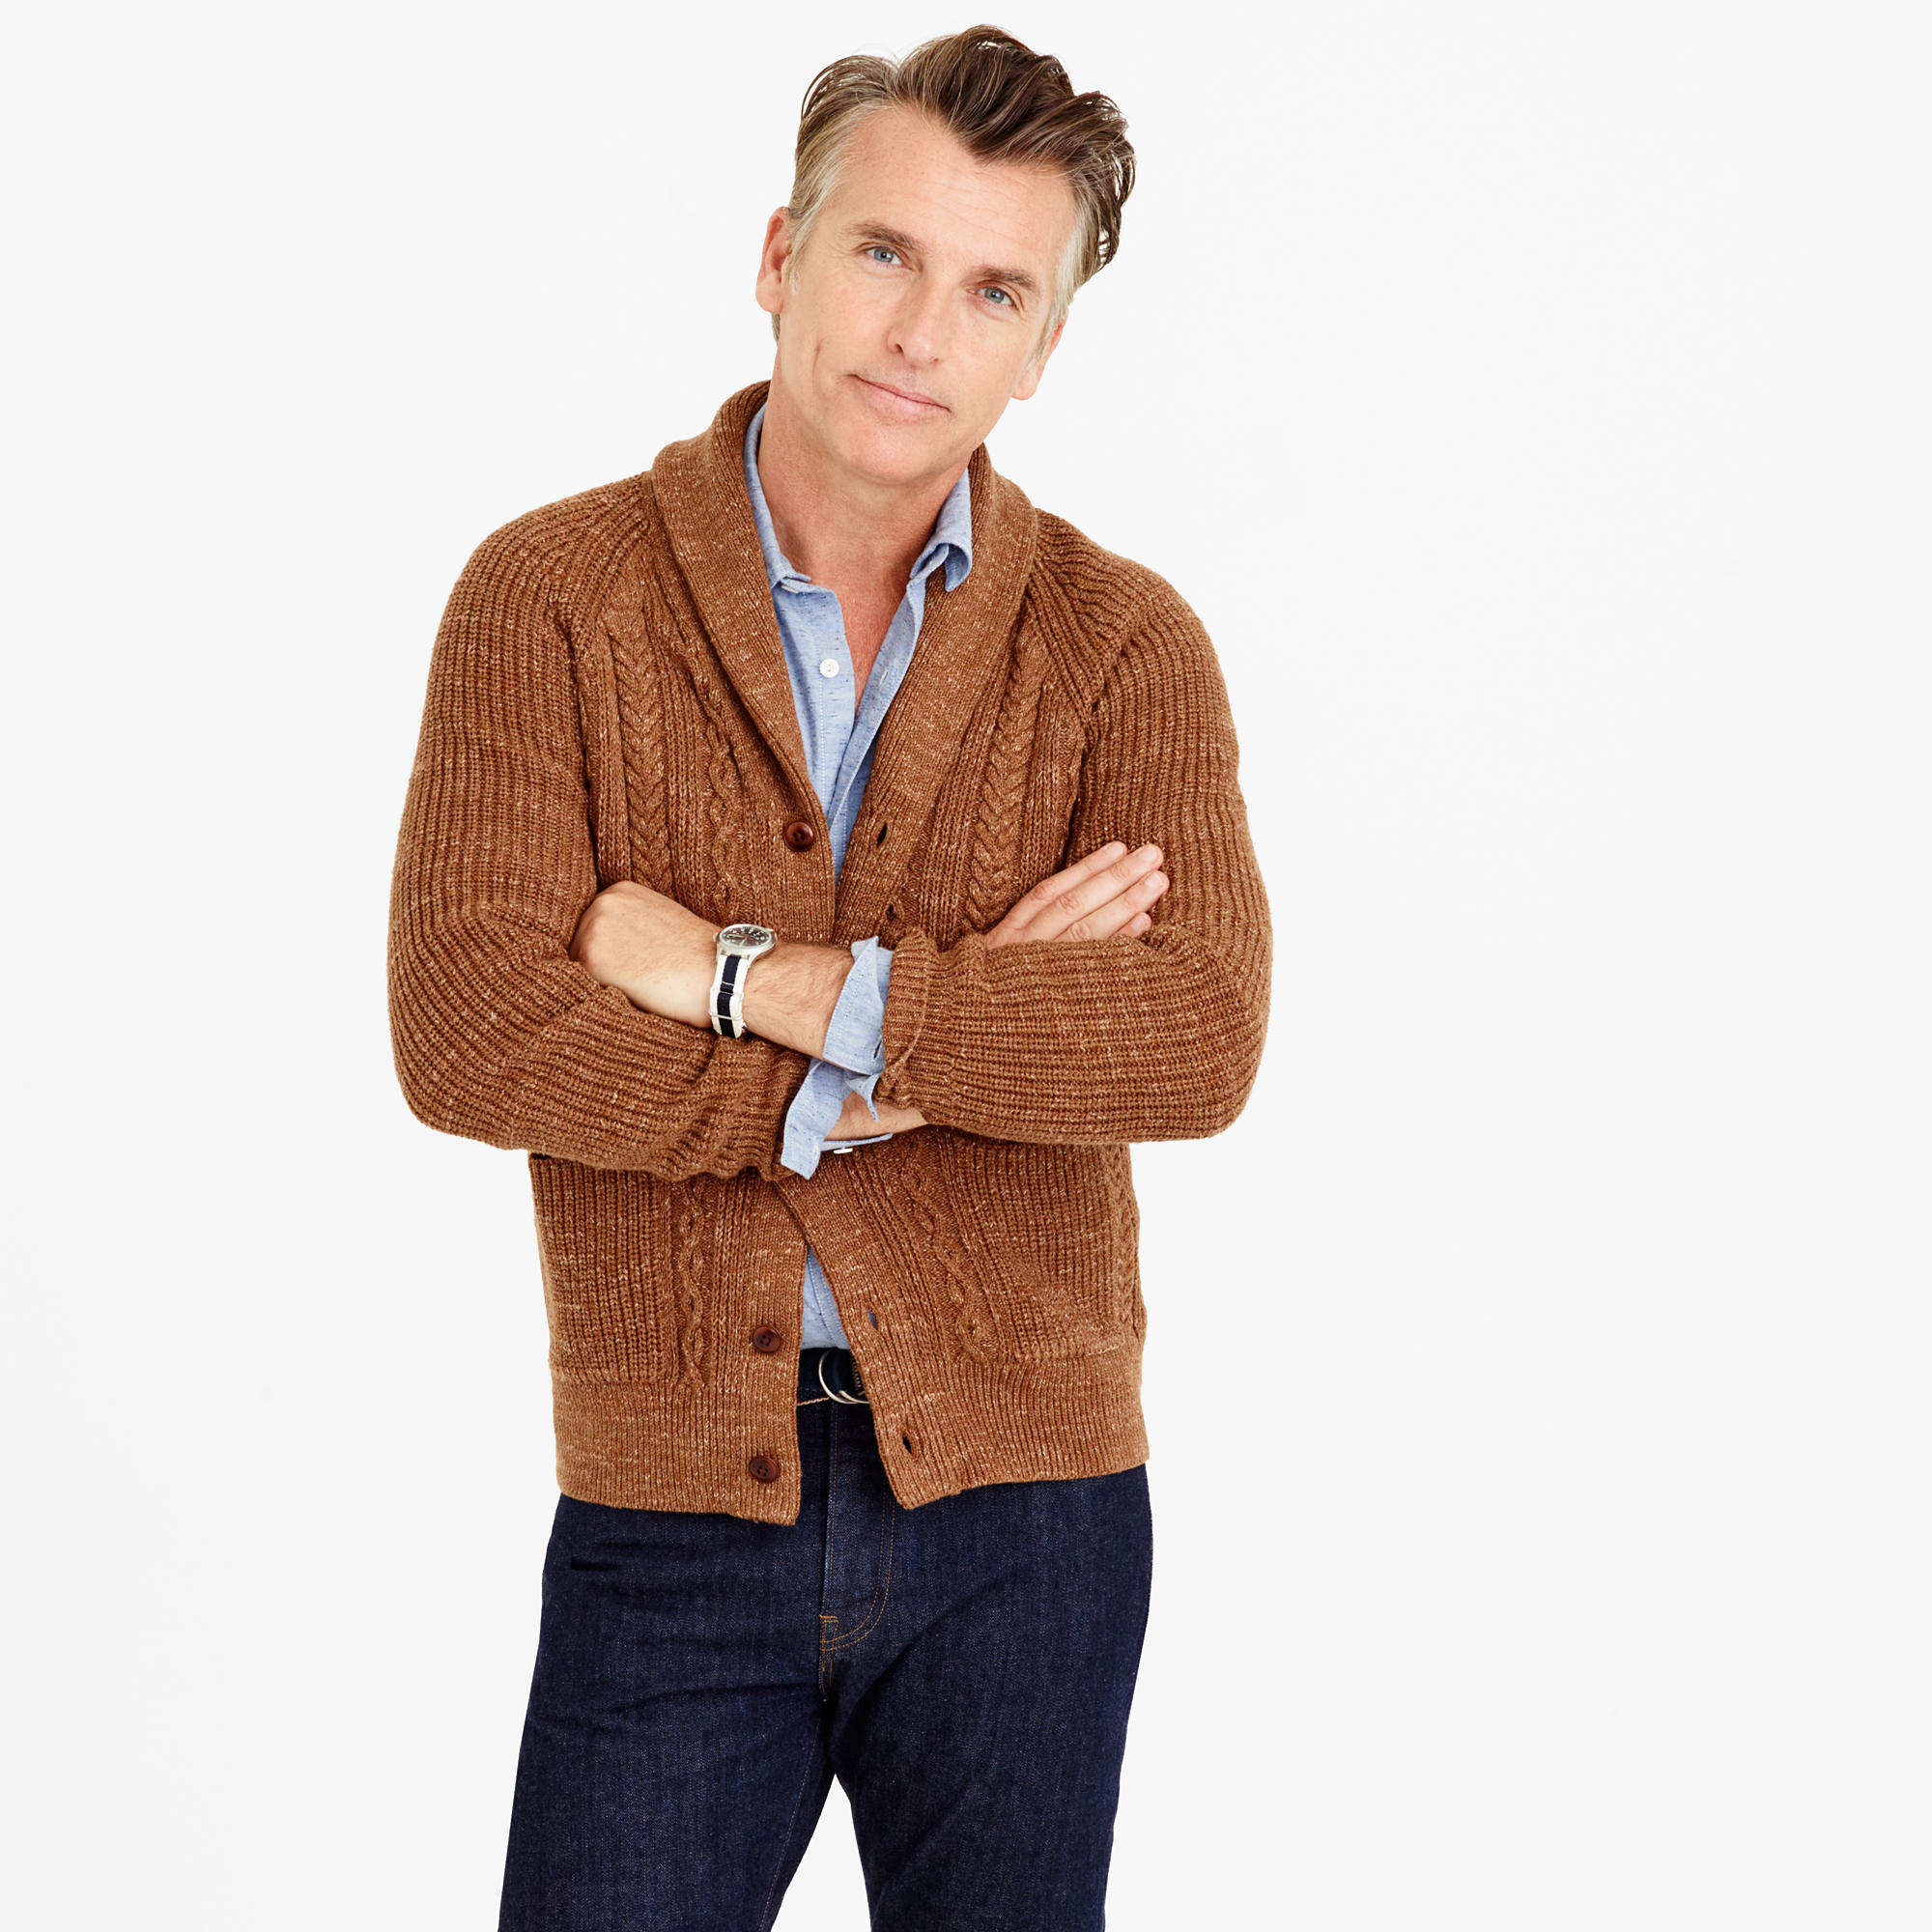 Men's Brown Shawl Cardigan, Light Blue Long Sleeve Shirt, Navy ...